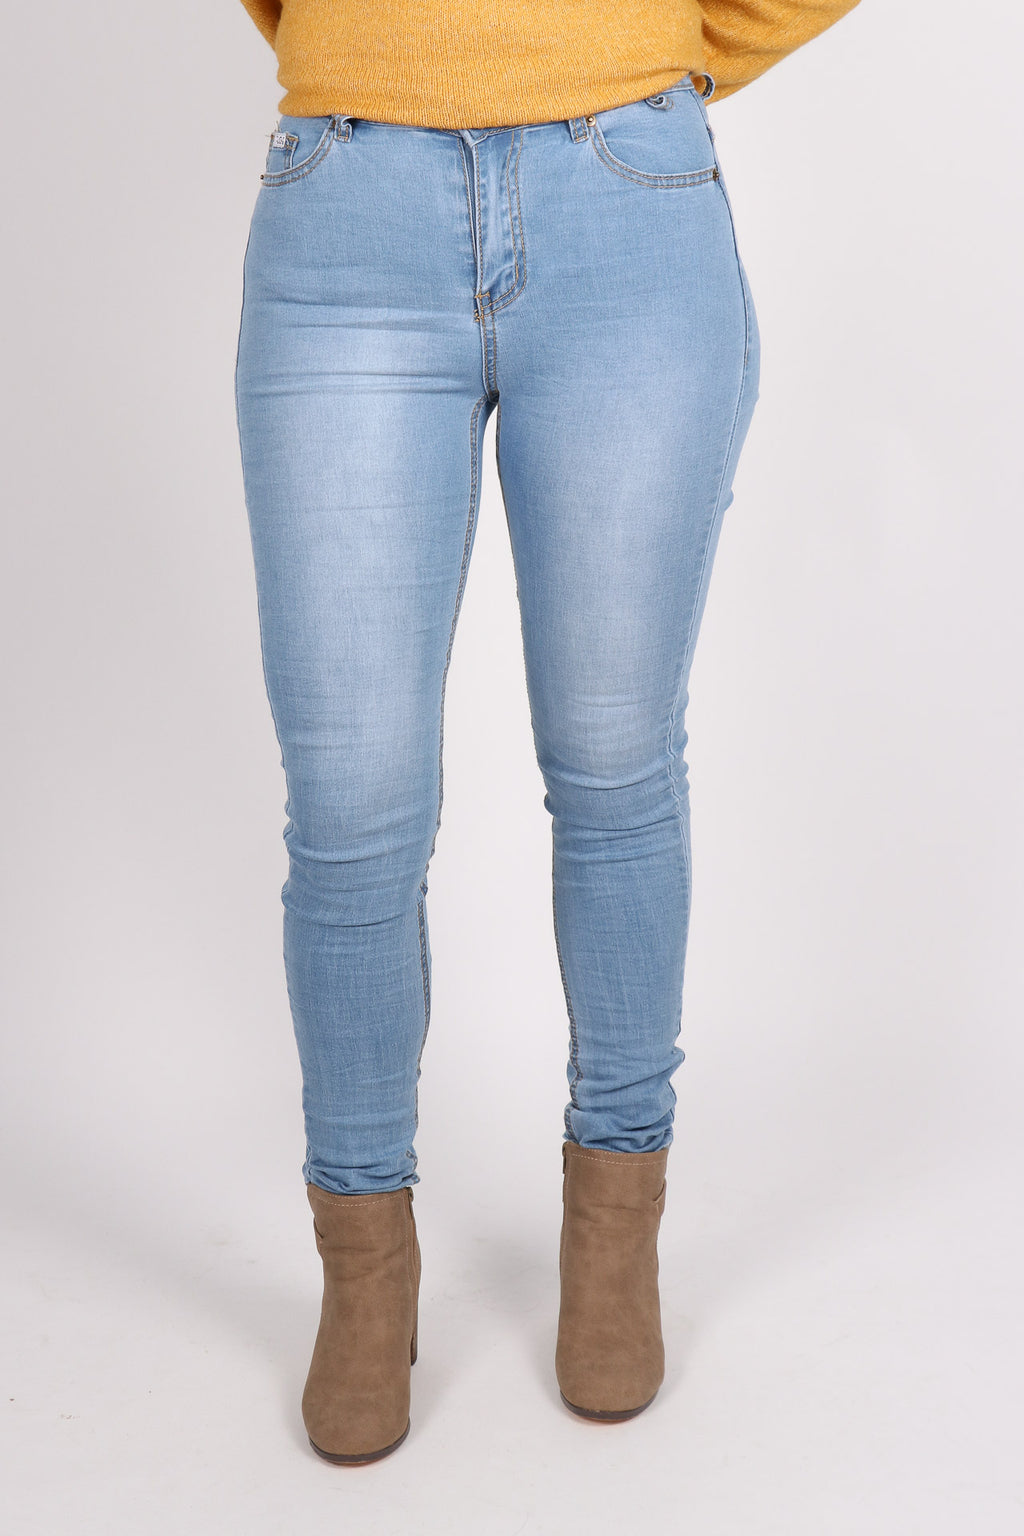 Maison Stretch Jeans Light